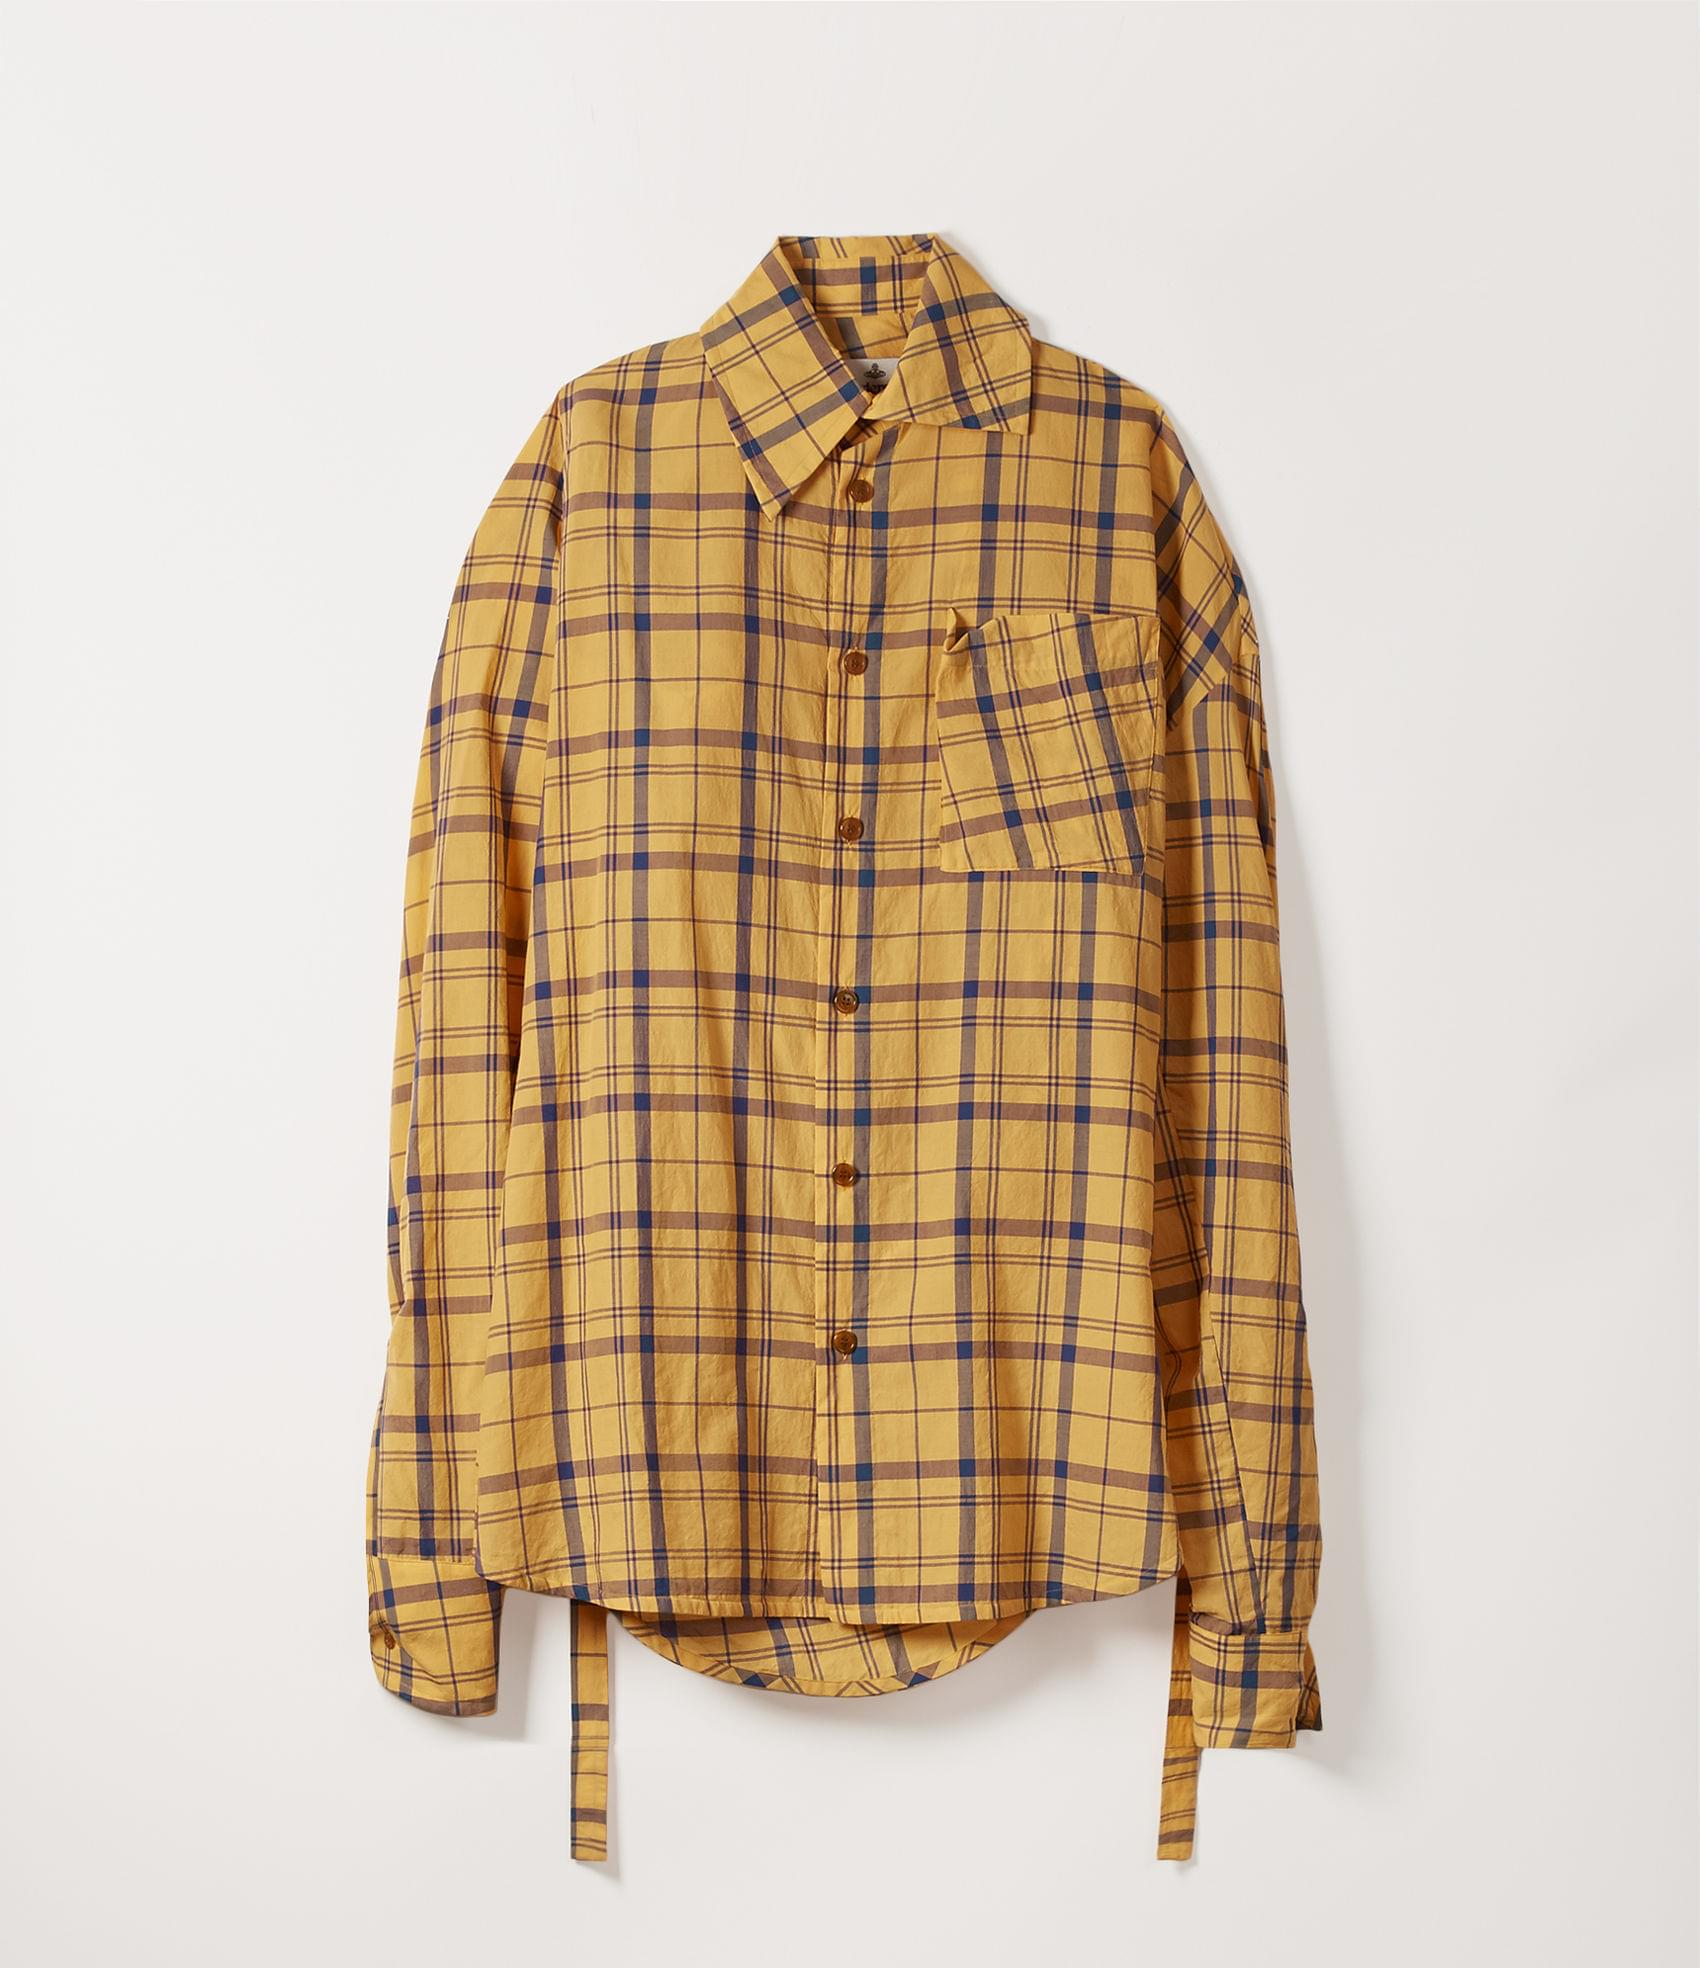 Vivienne Westwood LOTTIE SHIRT YELLOW TARTAN